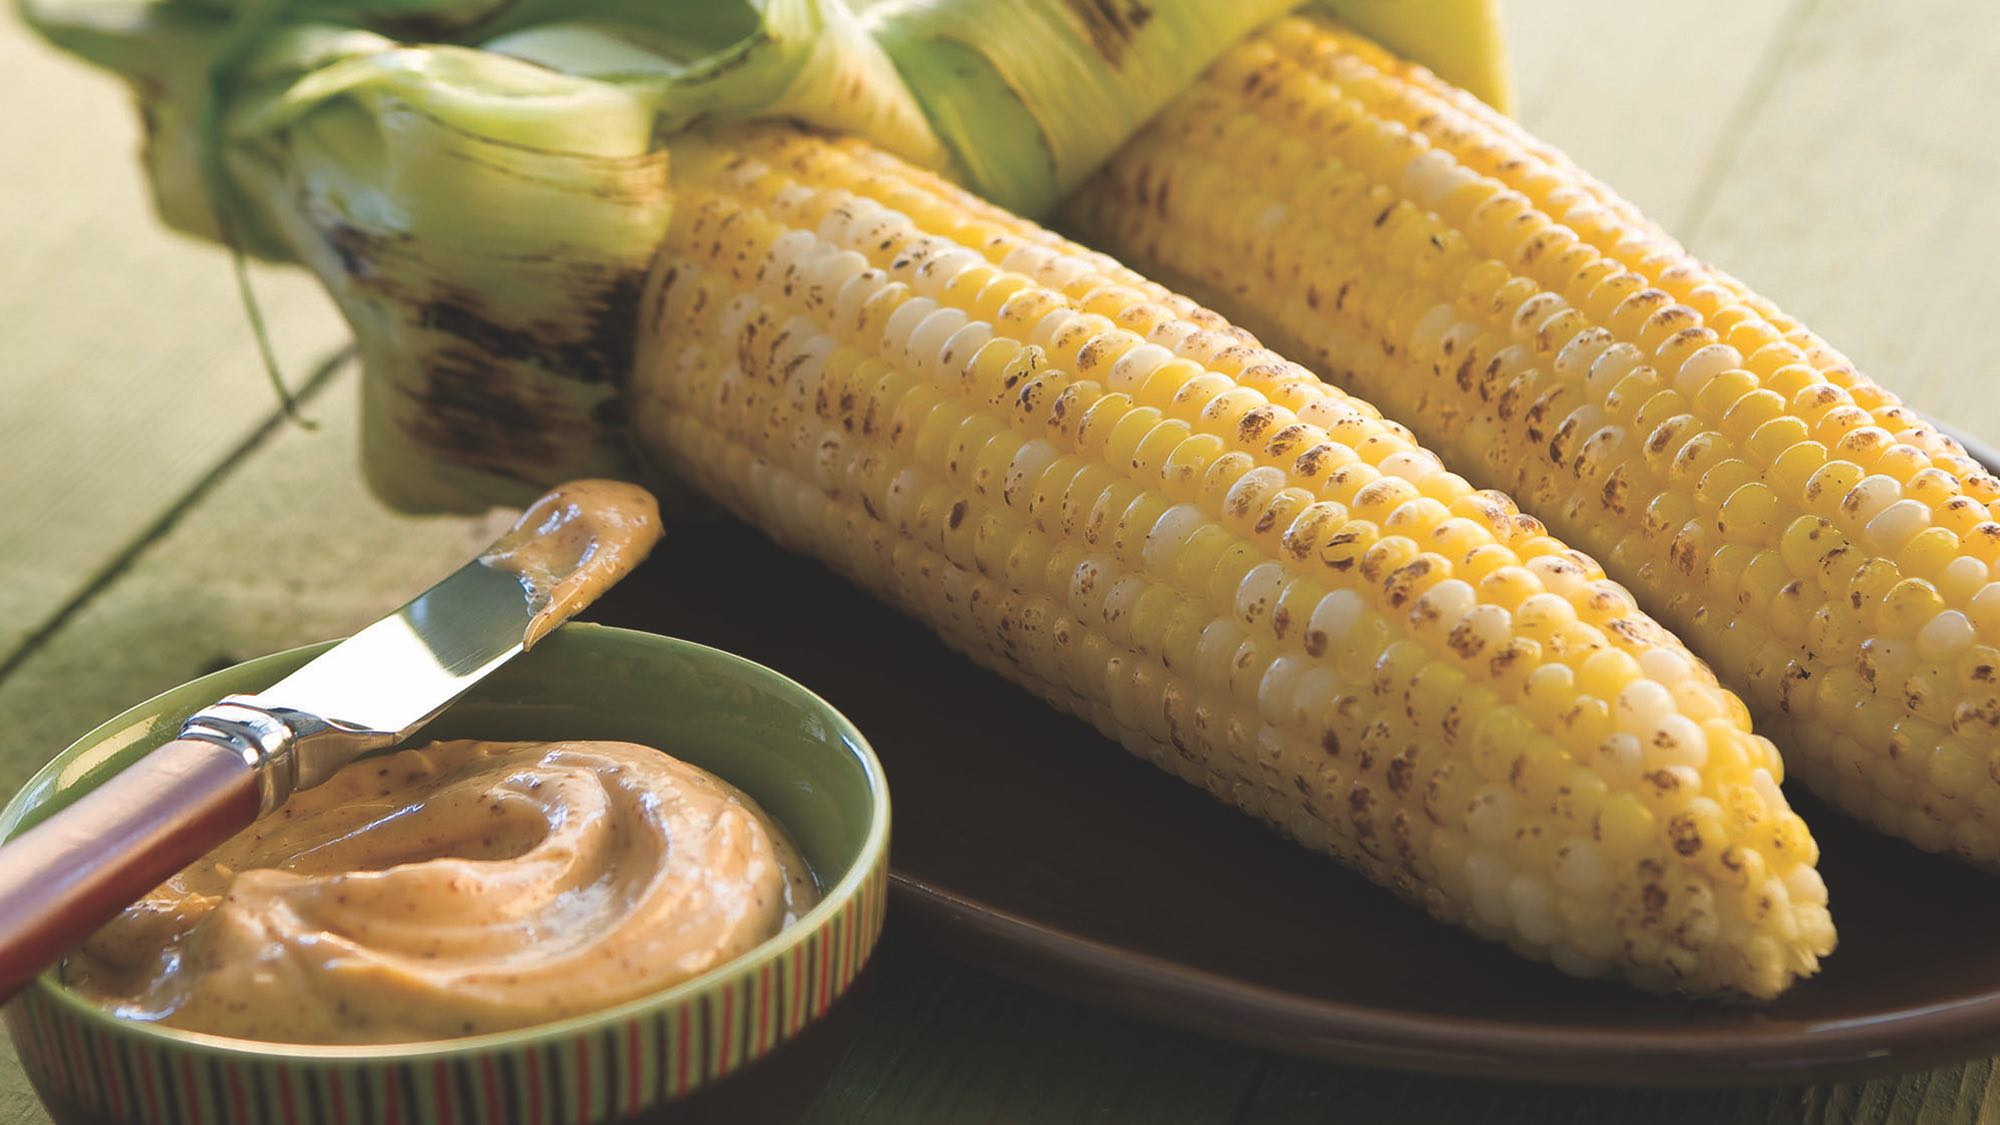 grilled-mexican-style-corn-on-the-cob-with-lime-mayonnaise.jpg